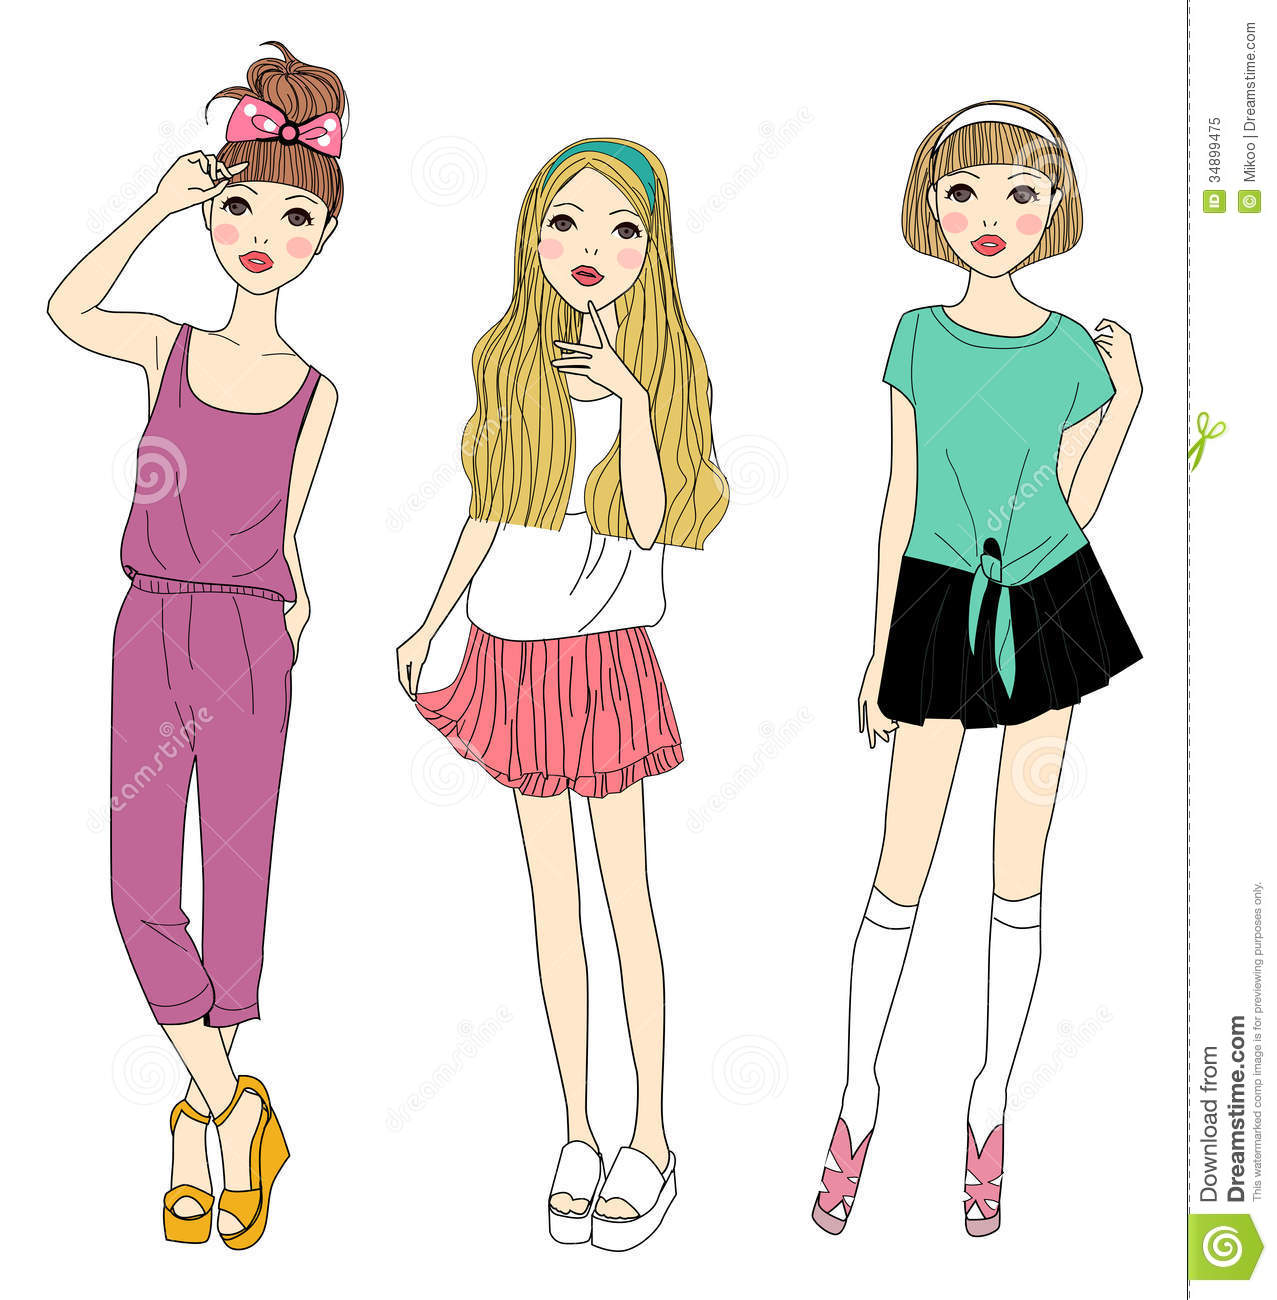 Related Three Girls Laughing Three Little Girls Clipart Three Girls